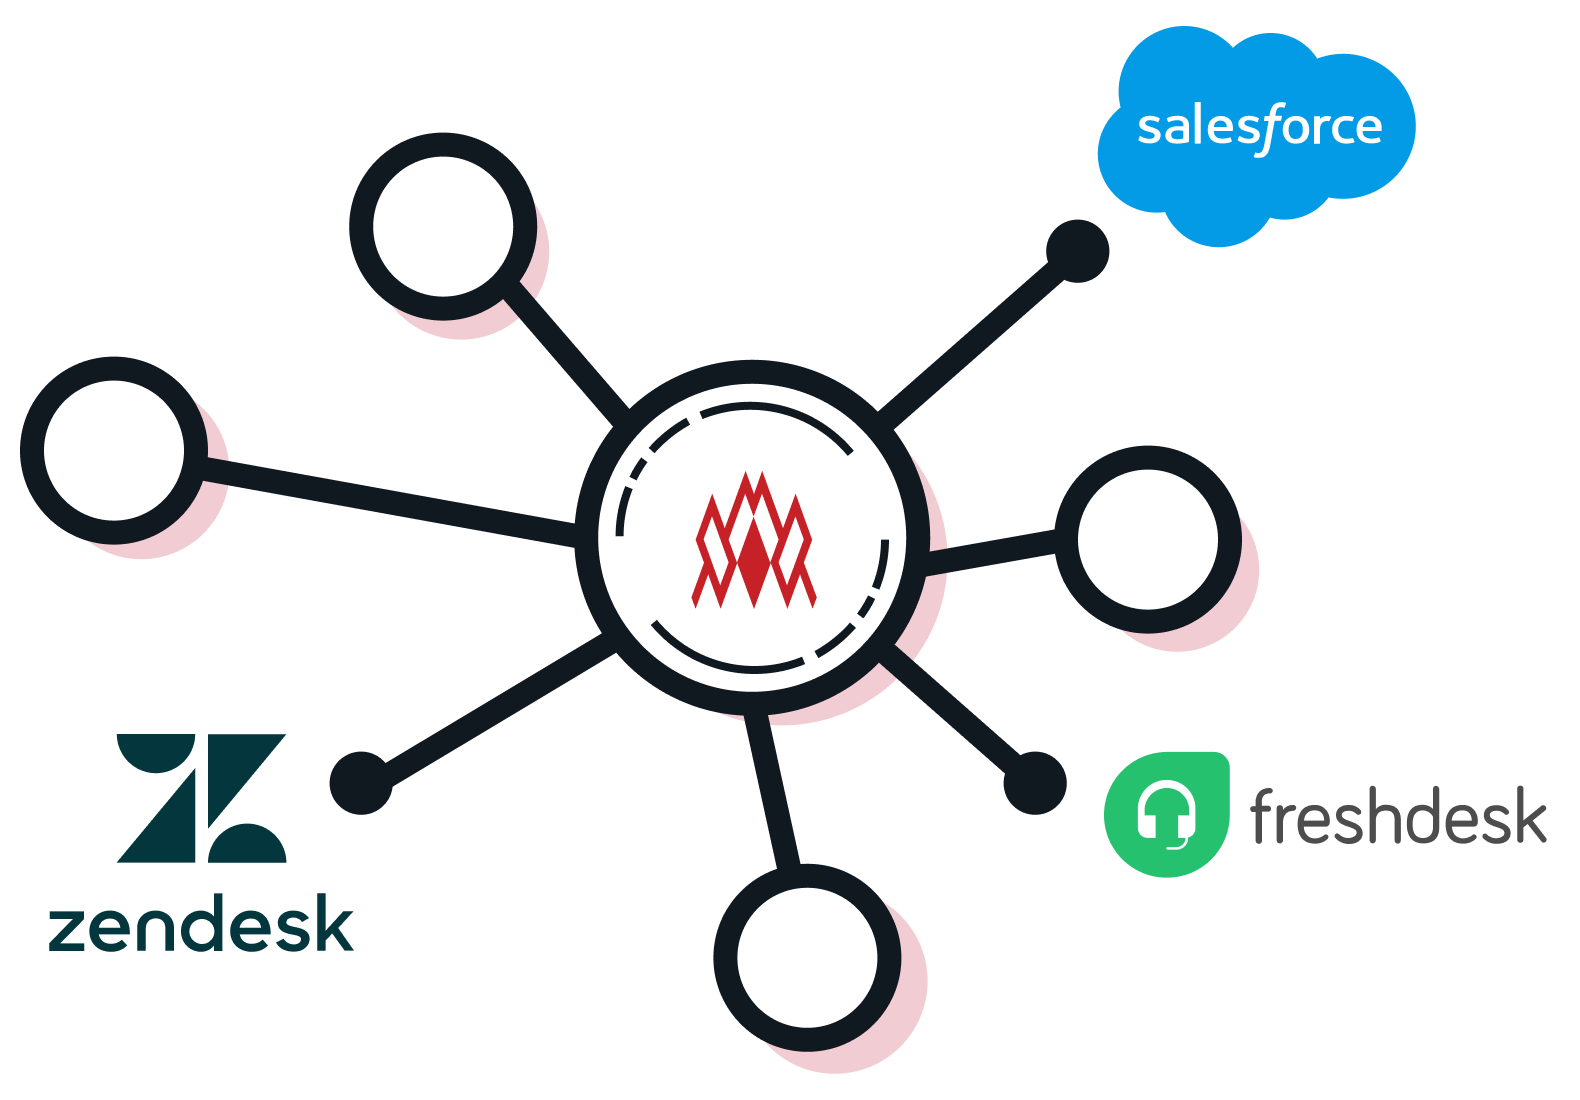 The system has a connecting function that can support the leading CRM systems in the market